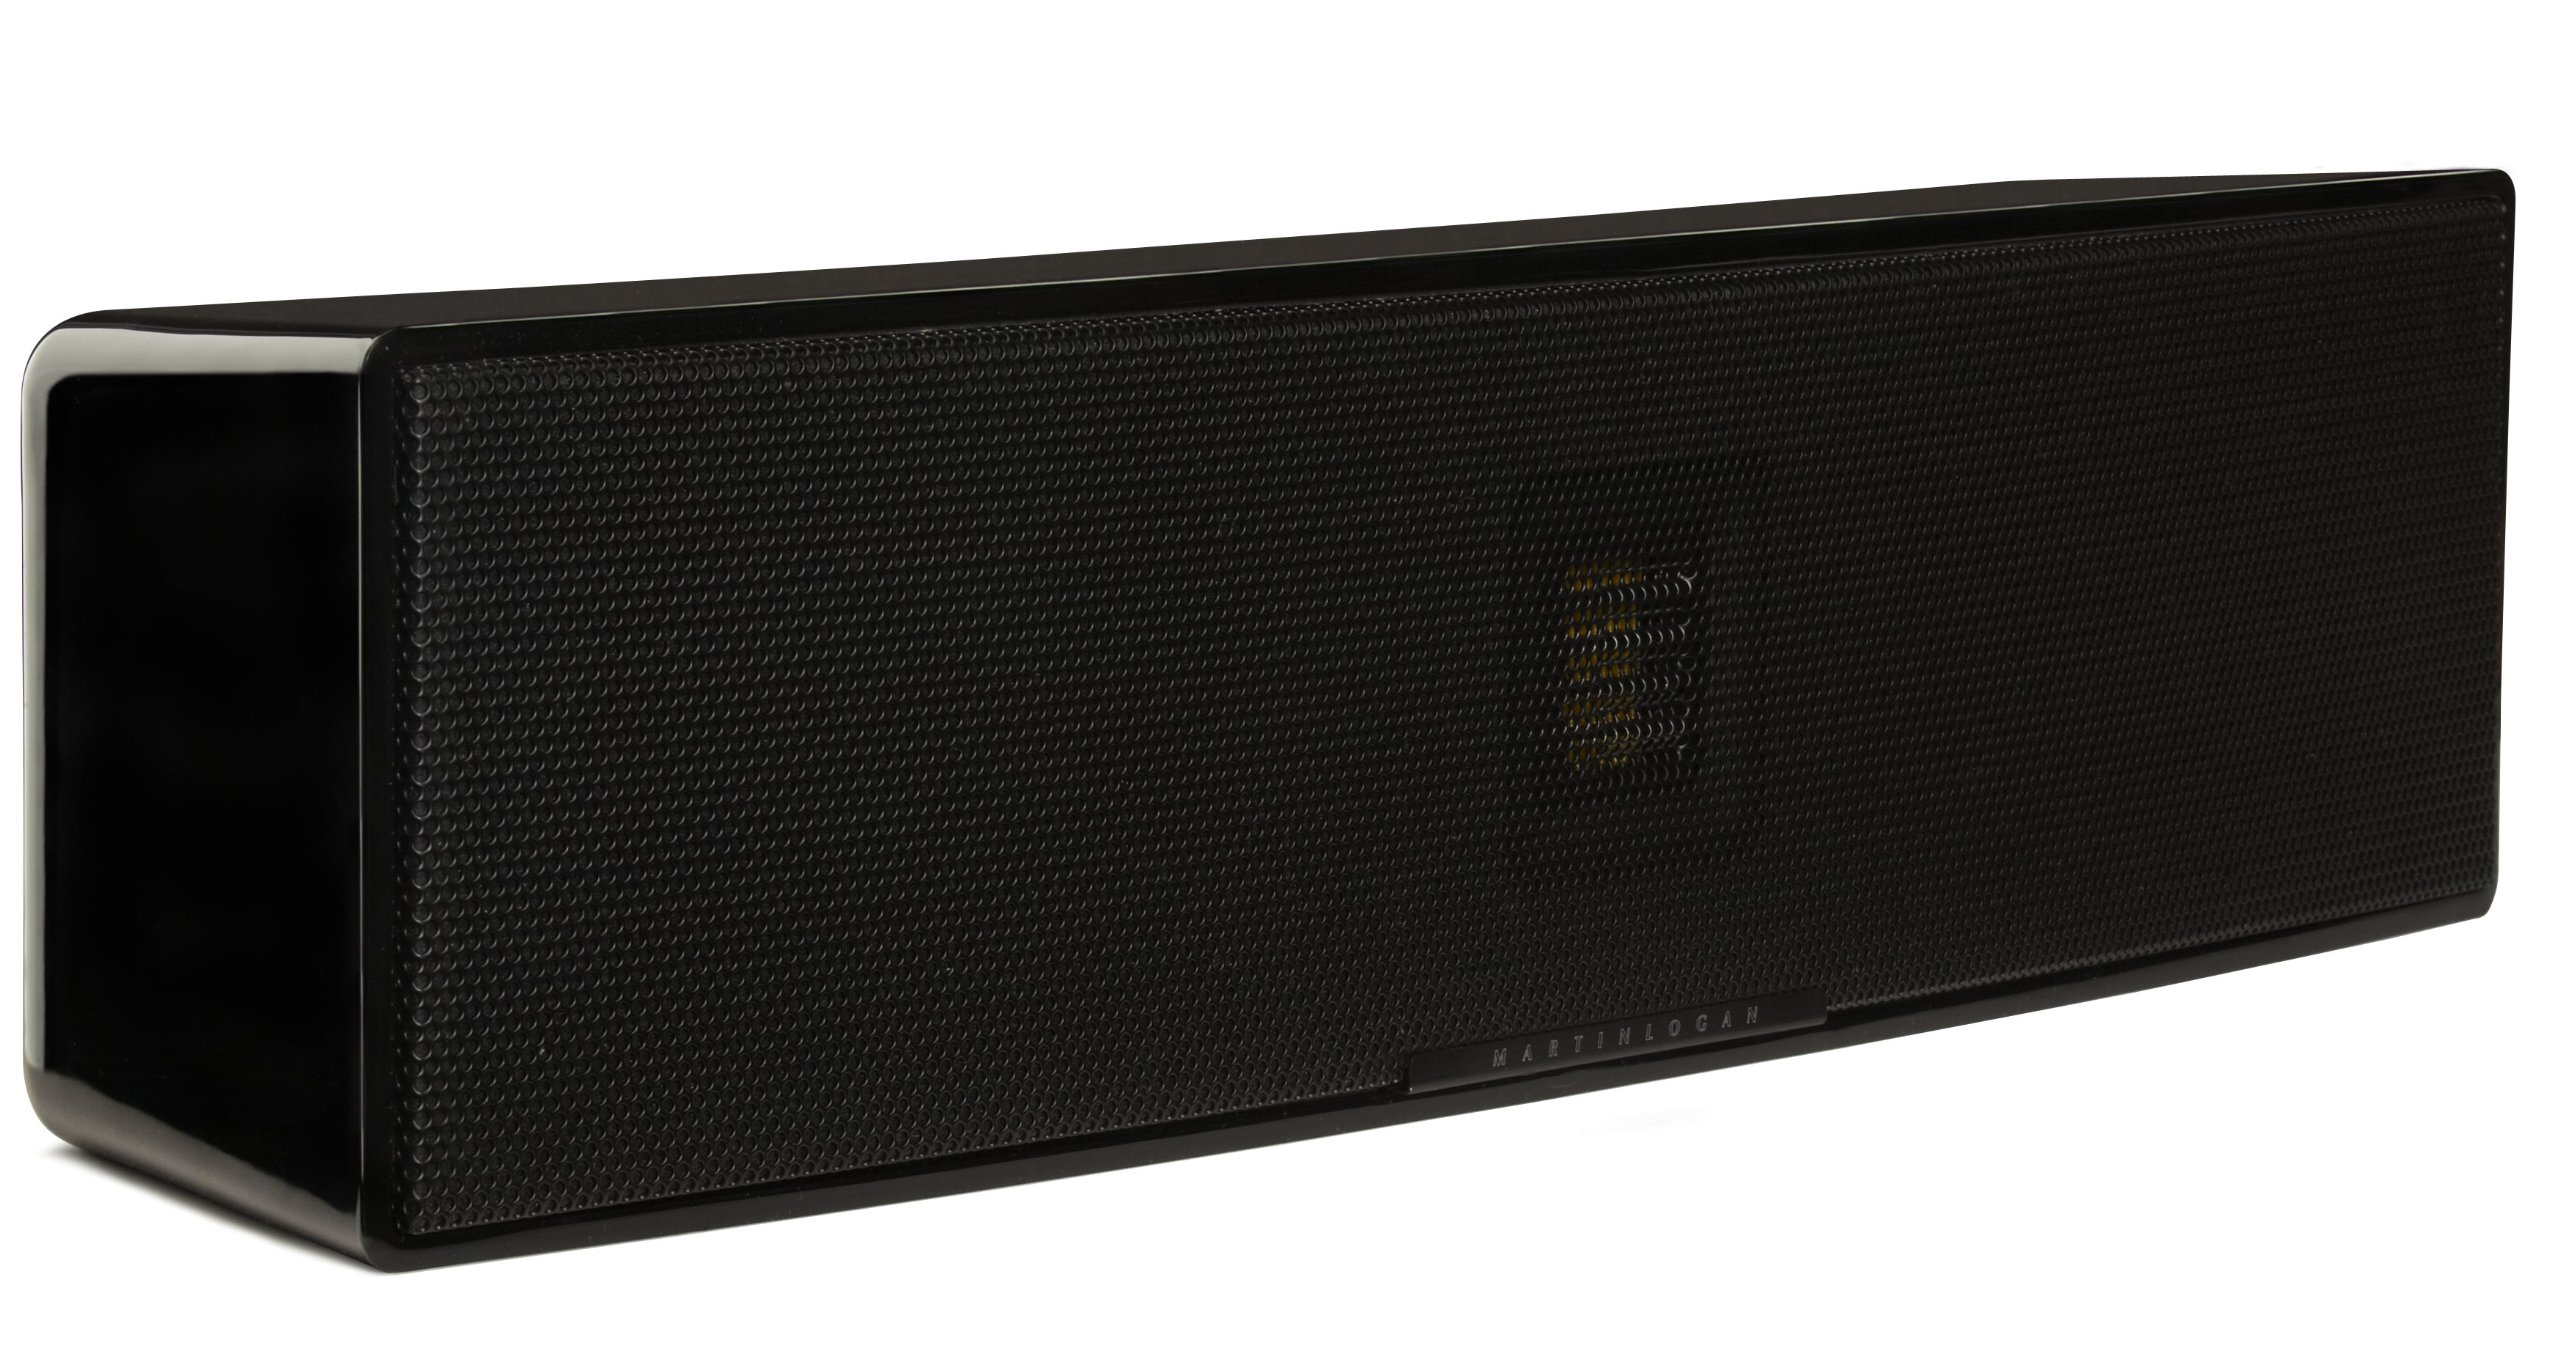 MartinLogan center channel speaker